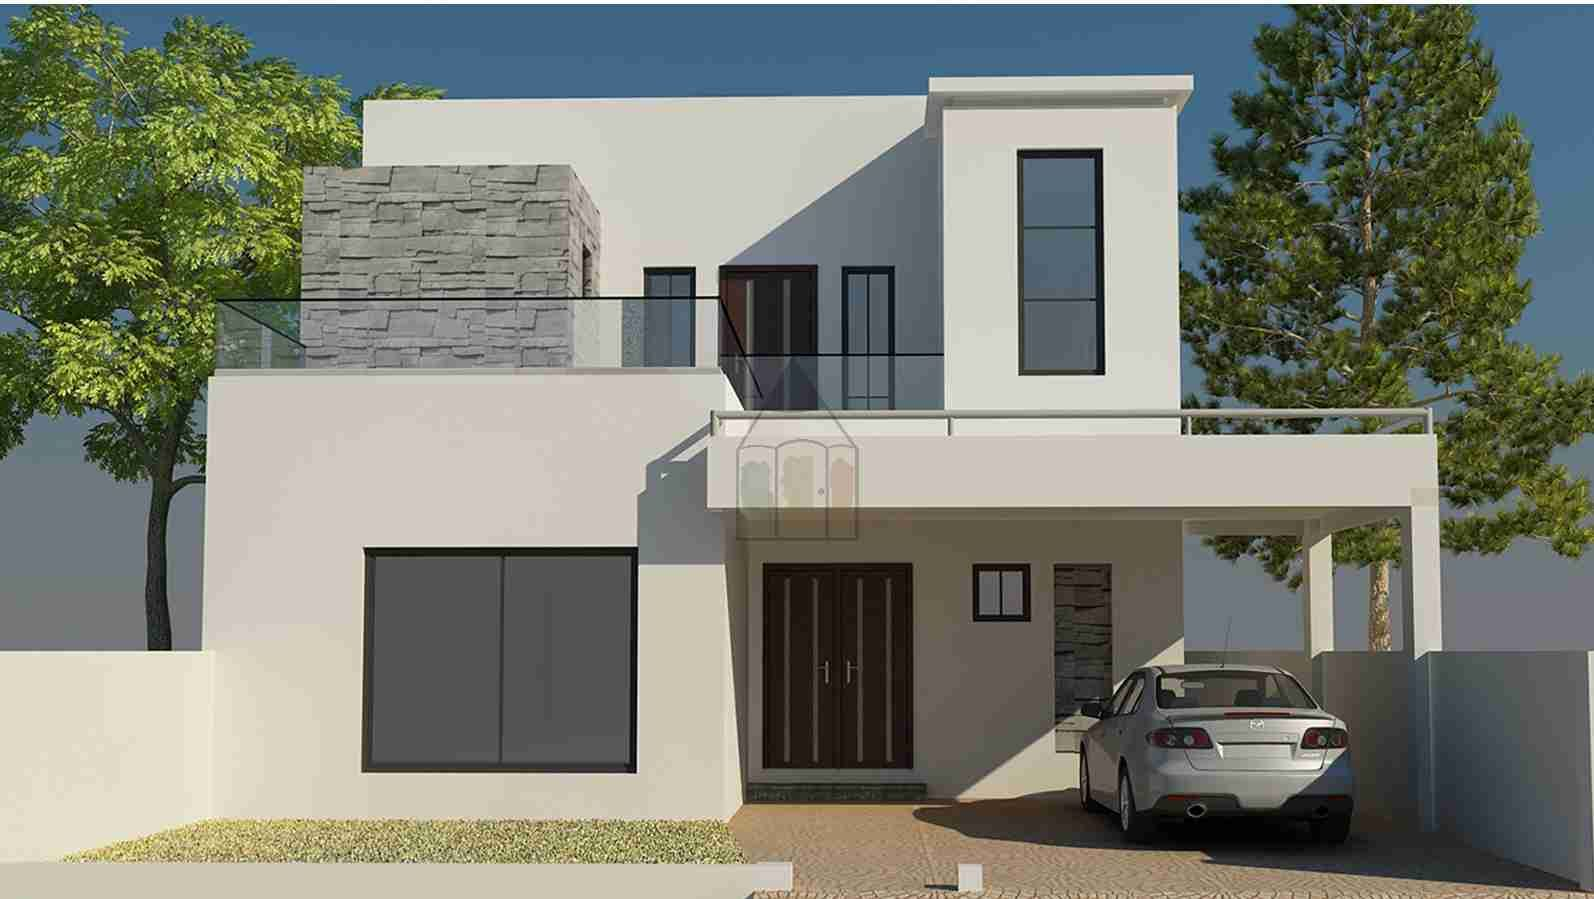 10 marla house design front elevation house elevation for 10 marla home designs in pakistan